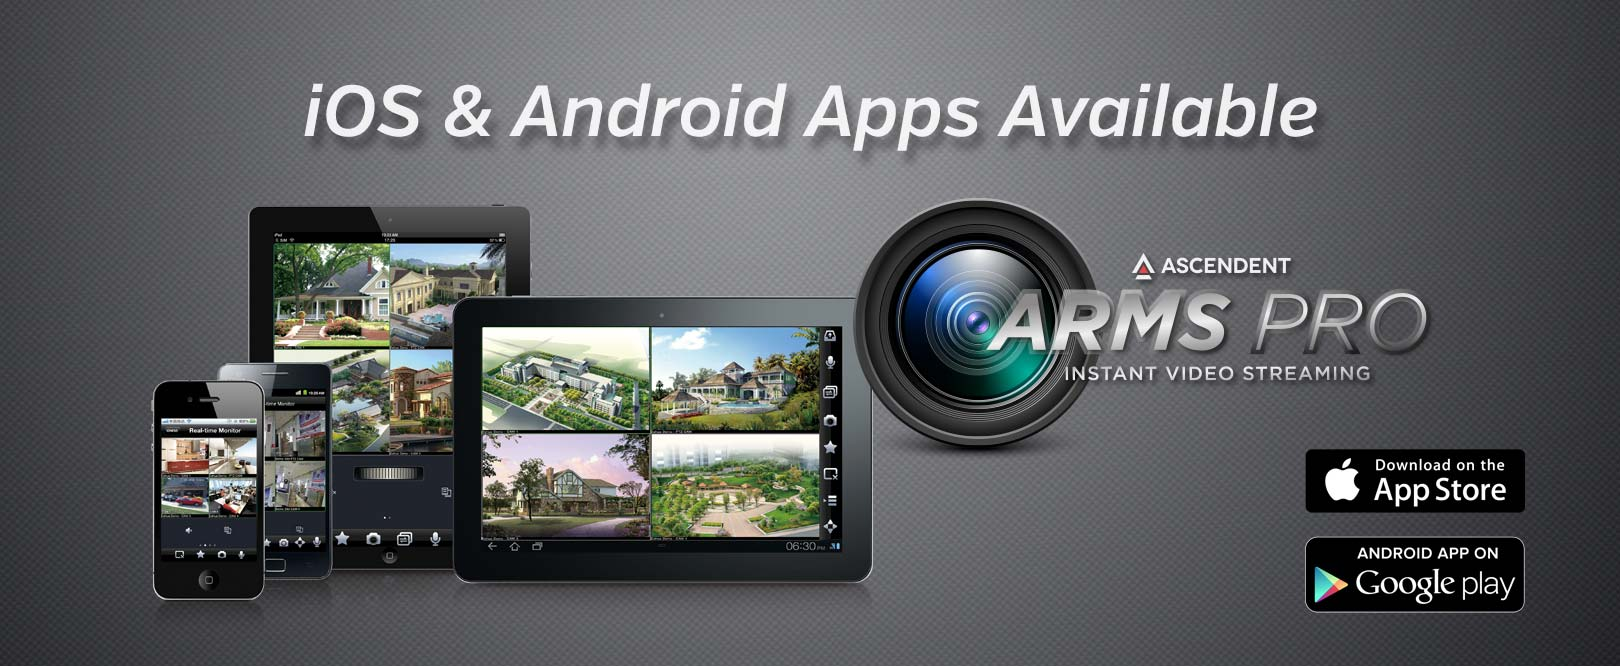 iOS & Android Apps Available